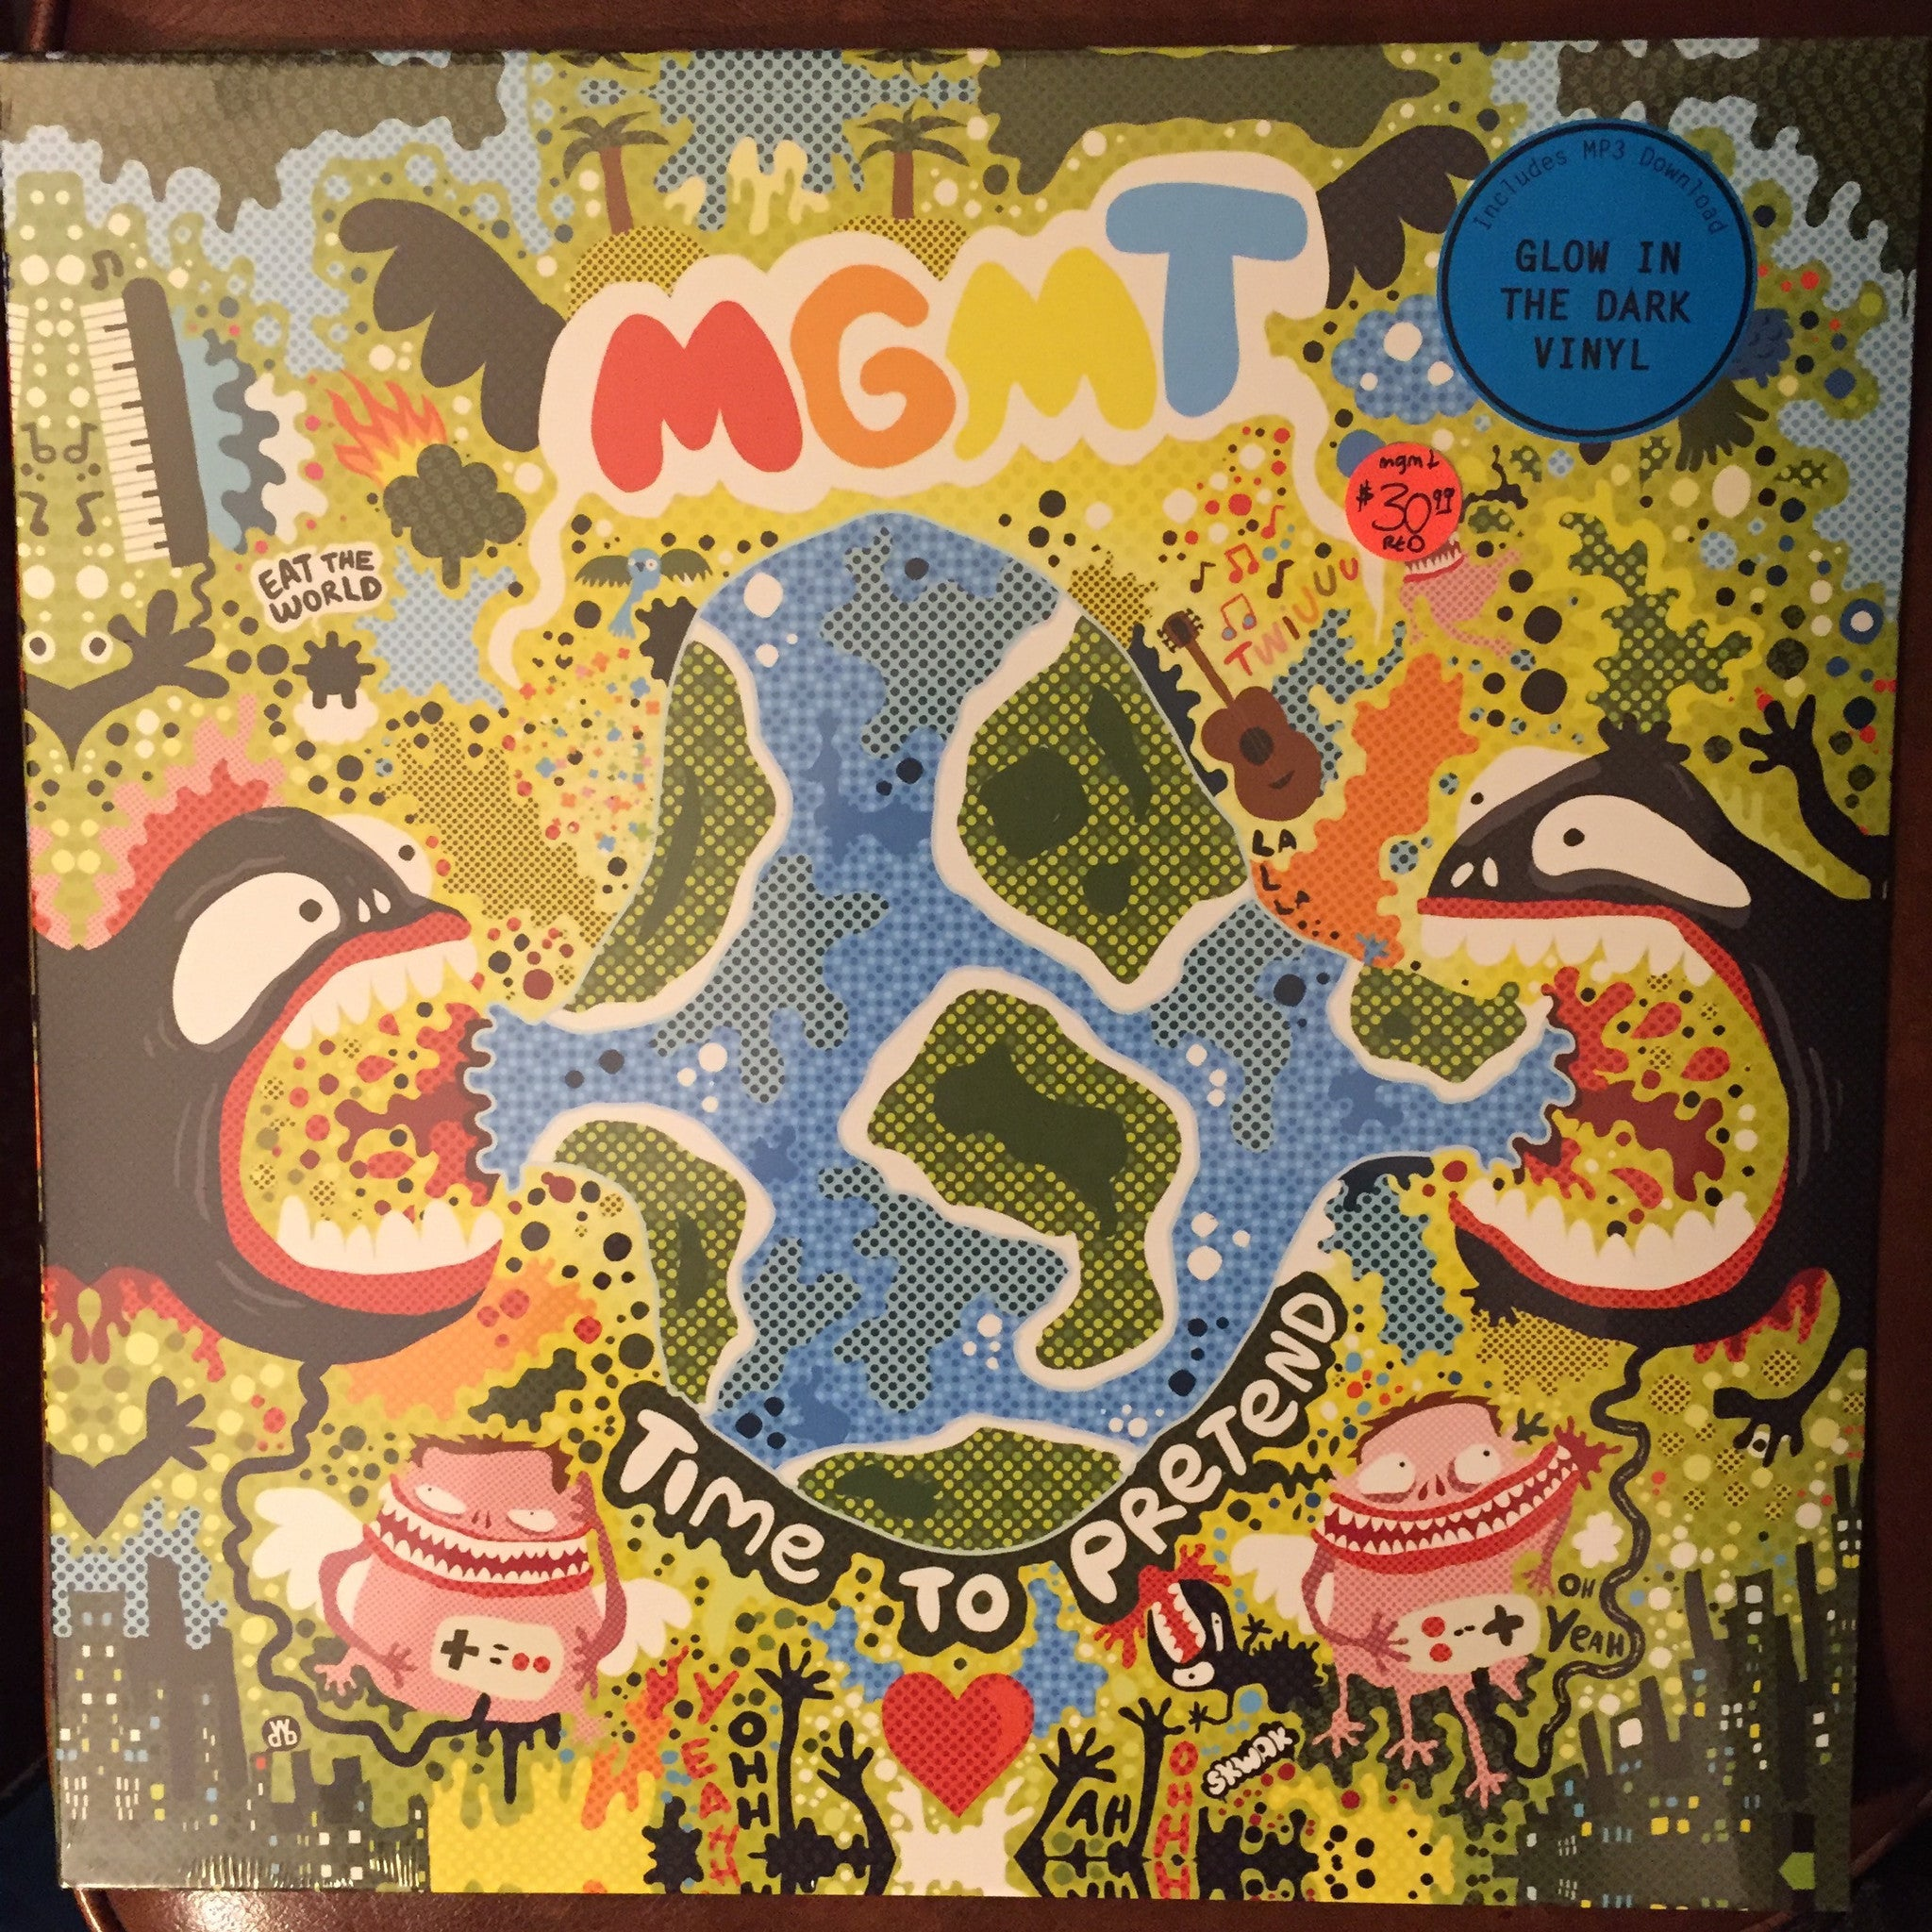 "MGMT - Time To Pretend 12"" EP (Glow In the Dark Vinyl)"